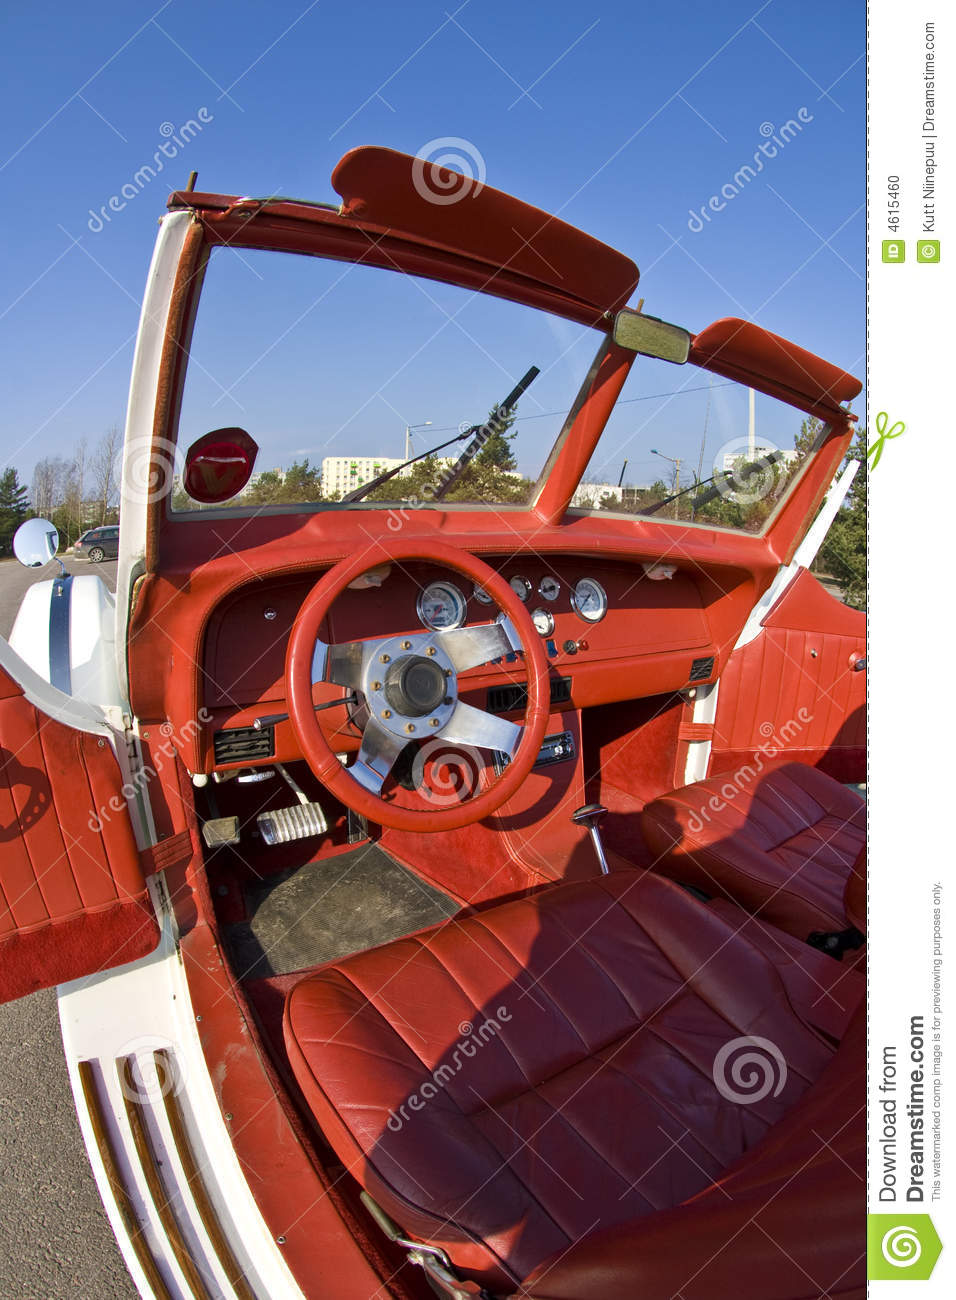 interior of vintage car stock photo image 4615460. Black Bedroom Furniture Sets. Home Design Ideas